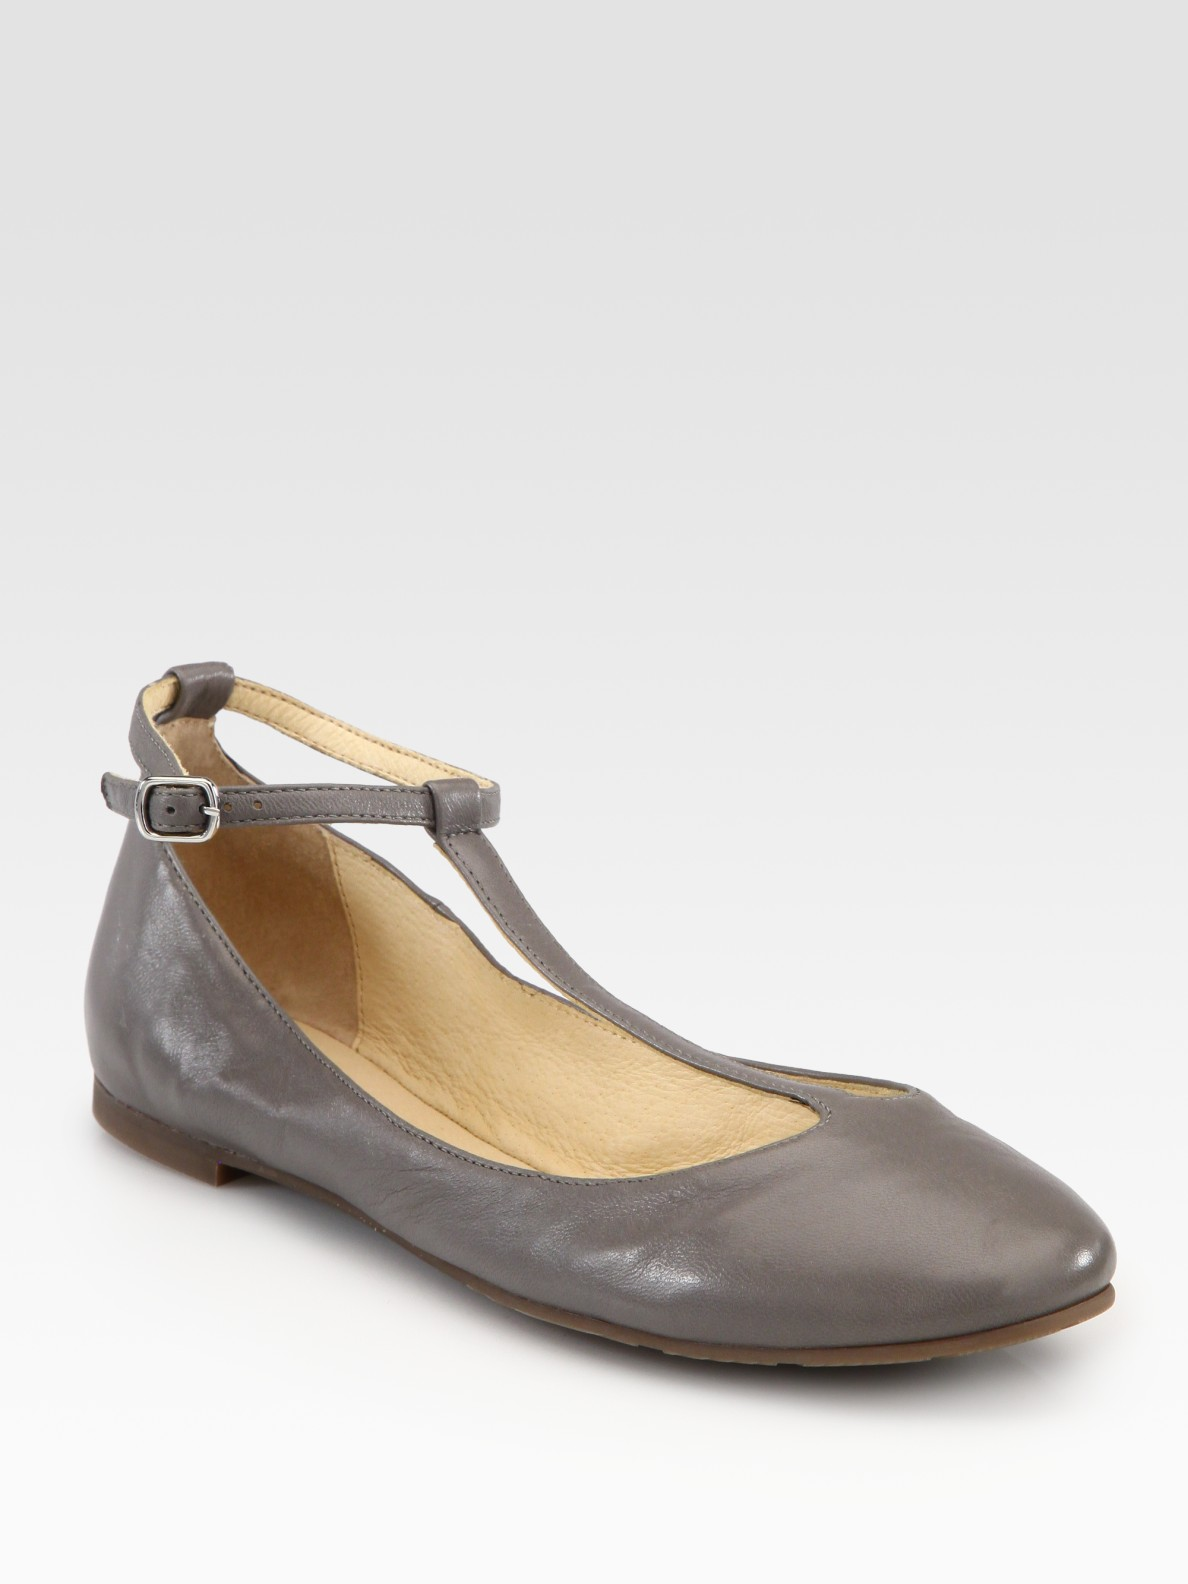 5263a99b213 Lyst - See By Chloé Leather Tstrap Mary Jane Ballet Flats in Gray